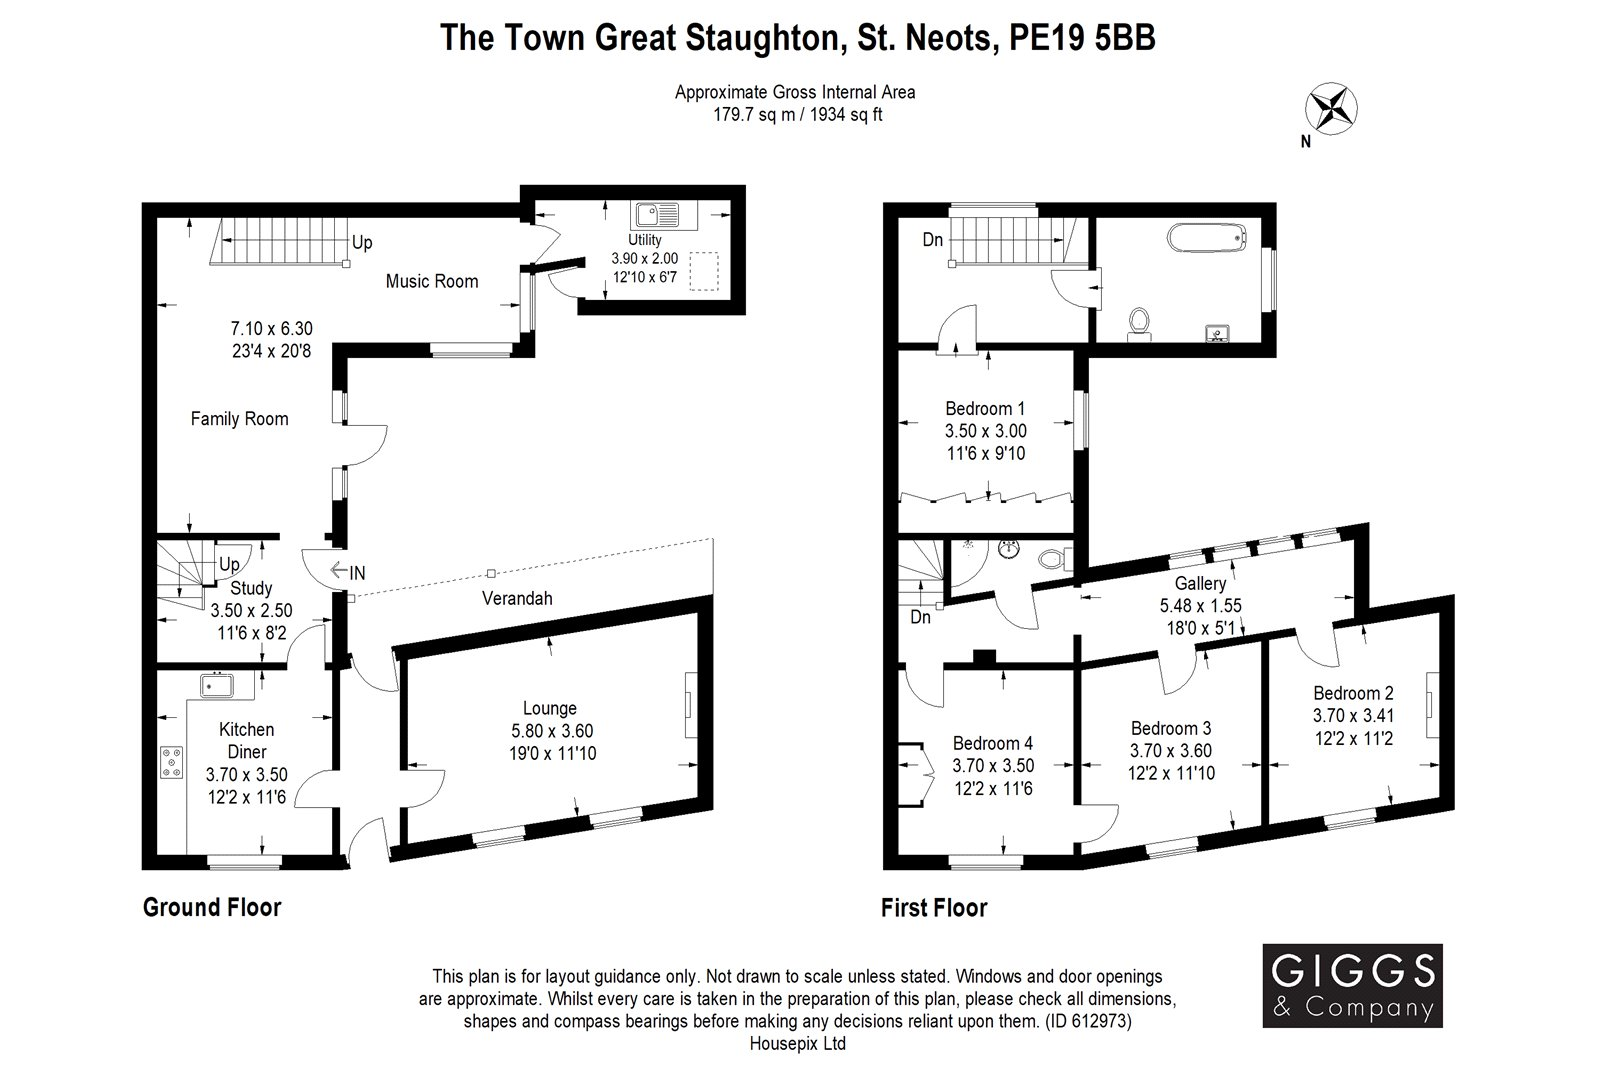 4 bed for sale in The Town, Great Staughton - Property Floorplan